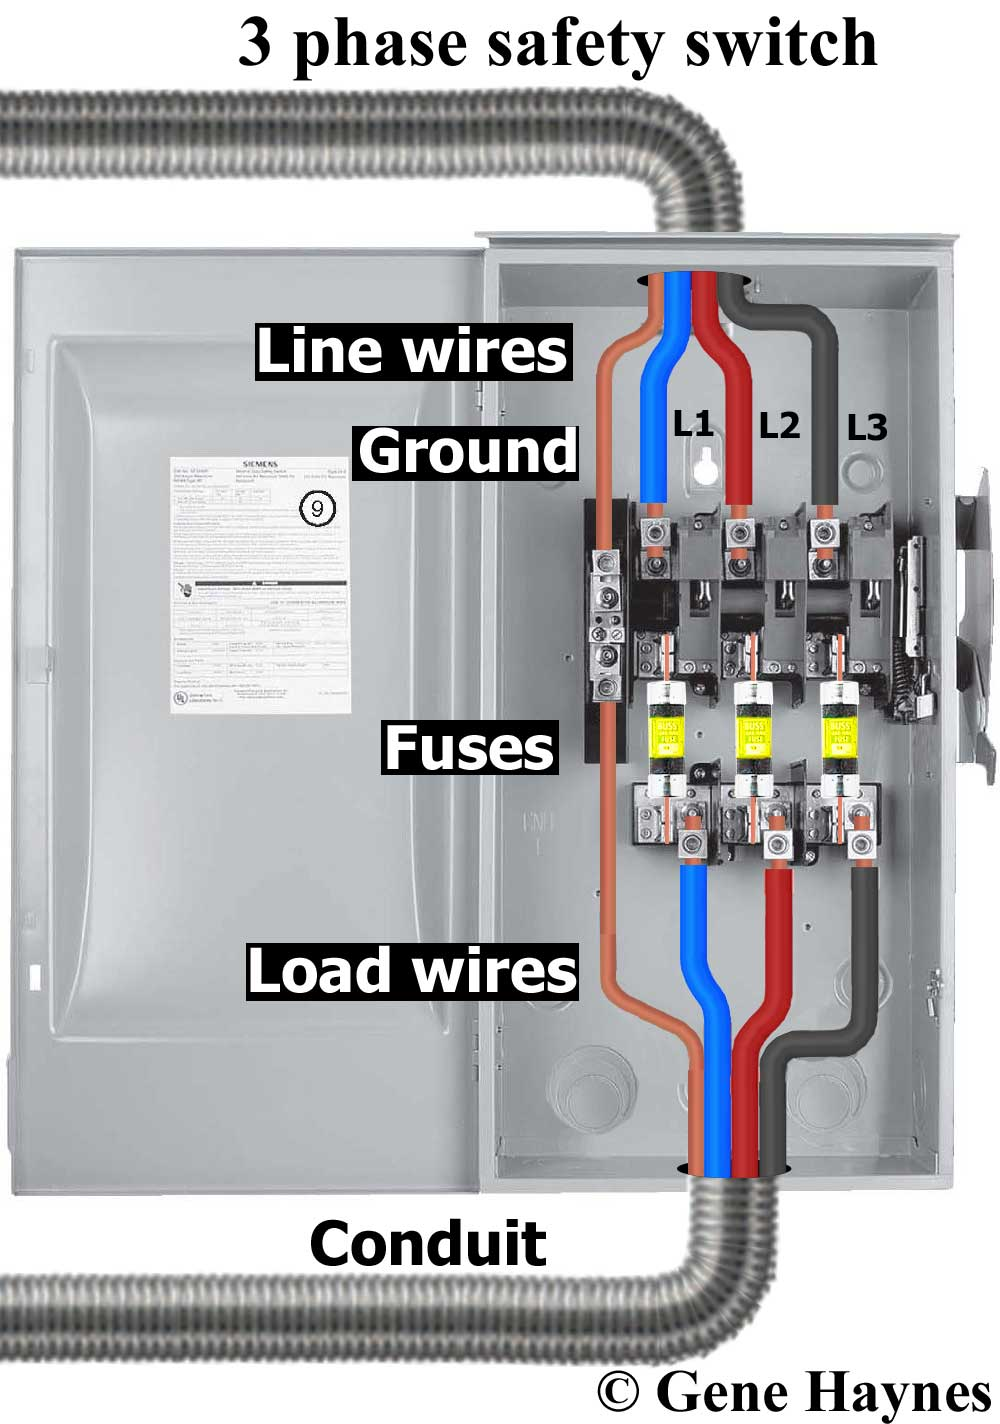 How to wire safety switch example shows fusable this is called a 4 wire but only 3 wires are disconnected by safety switch it is ok to have breaker and fuse on same line greentooth